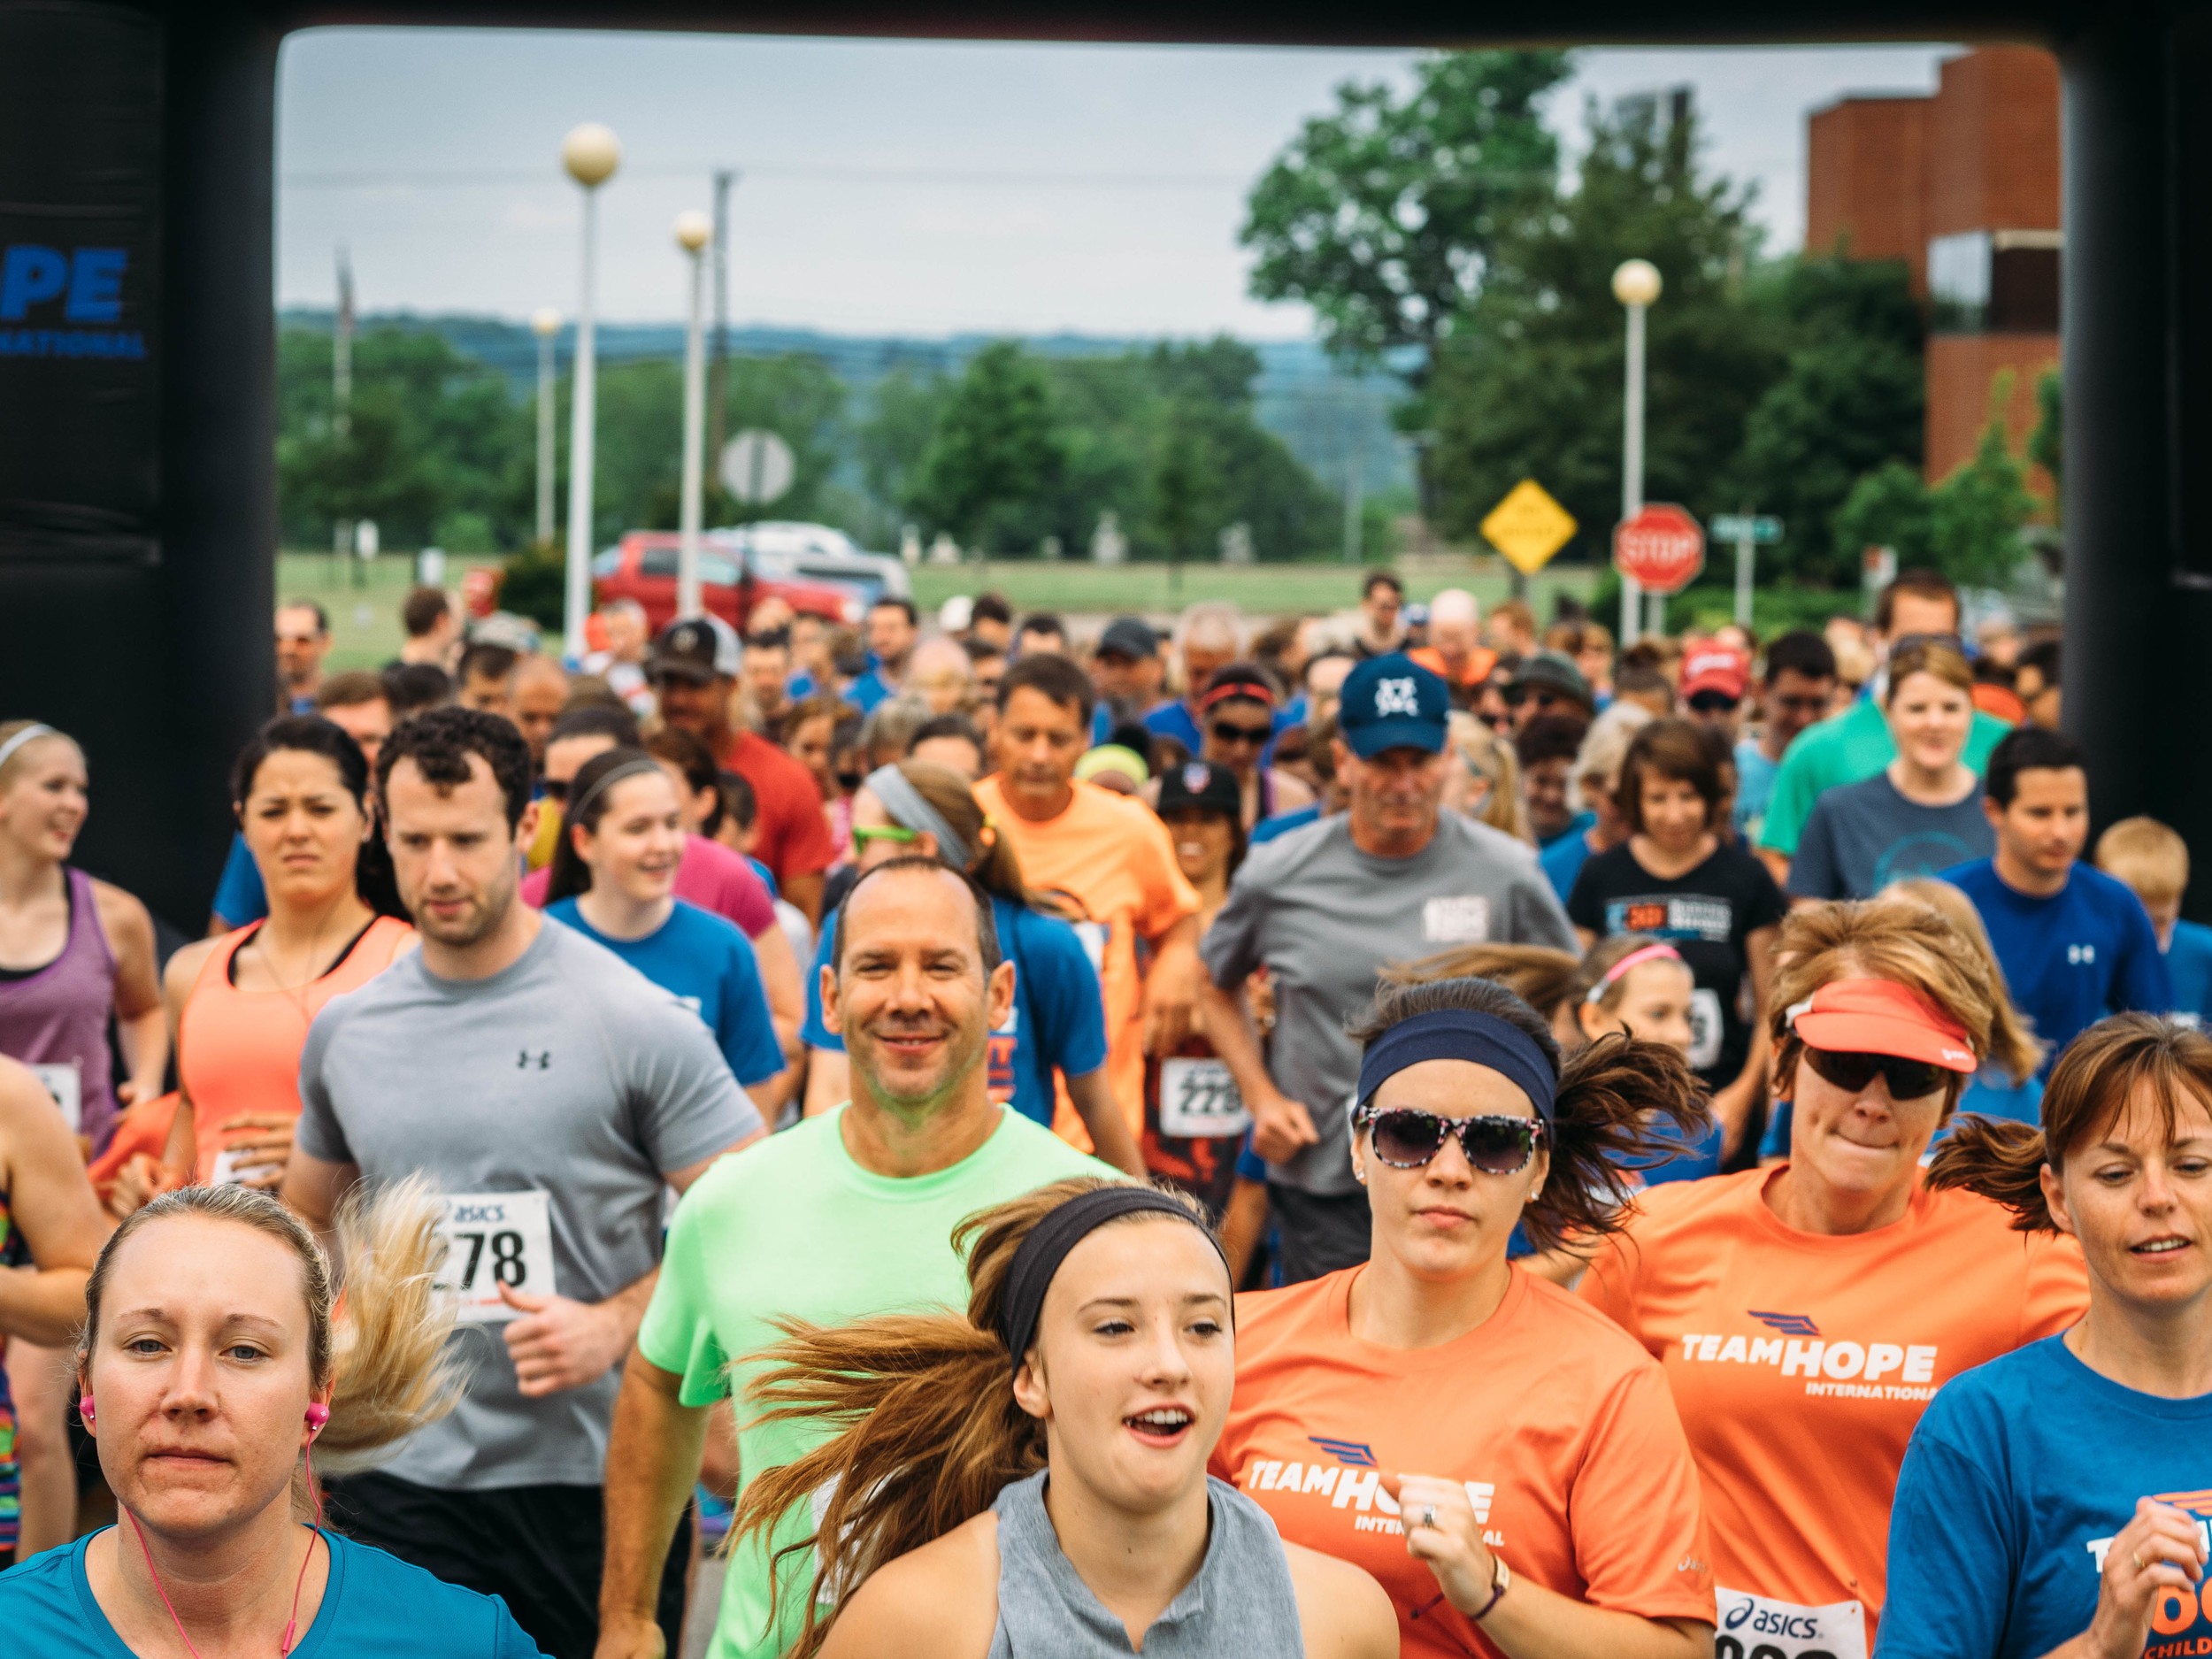 """Runners of all ages and experience levels gathered to raise funds for orphaned kids at the first ever Team Hope""""Sock It To Child Trafficking 5k"""" in Wooster, Ohio."""